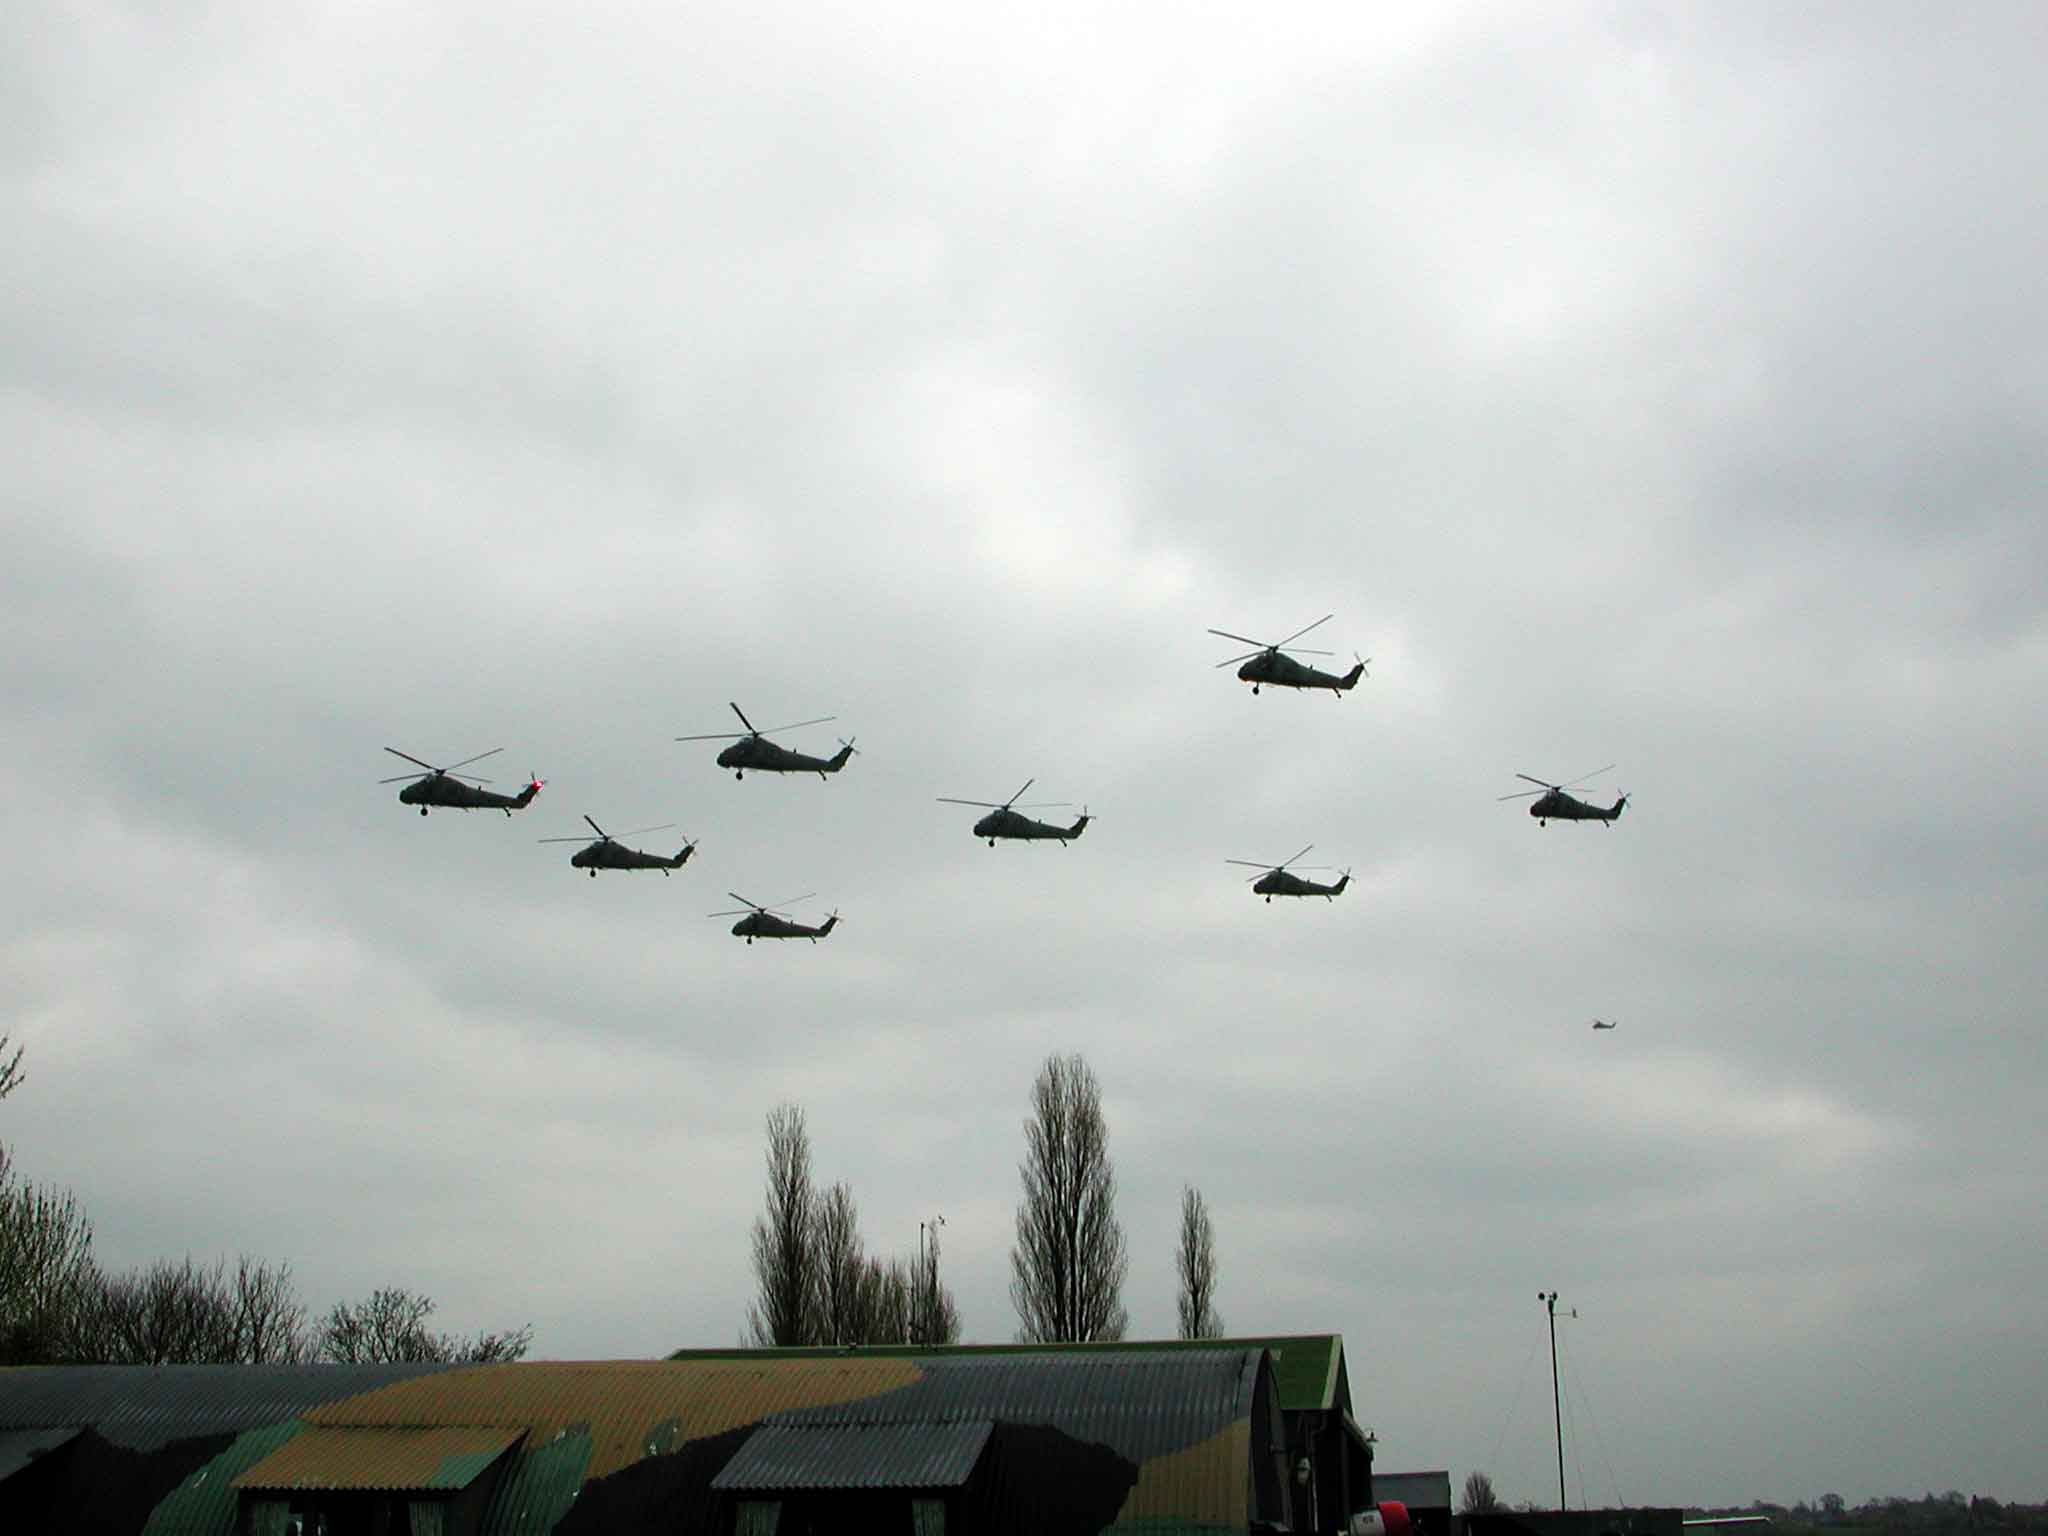 72 Squadron over North Weald airfield